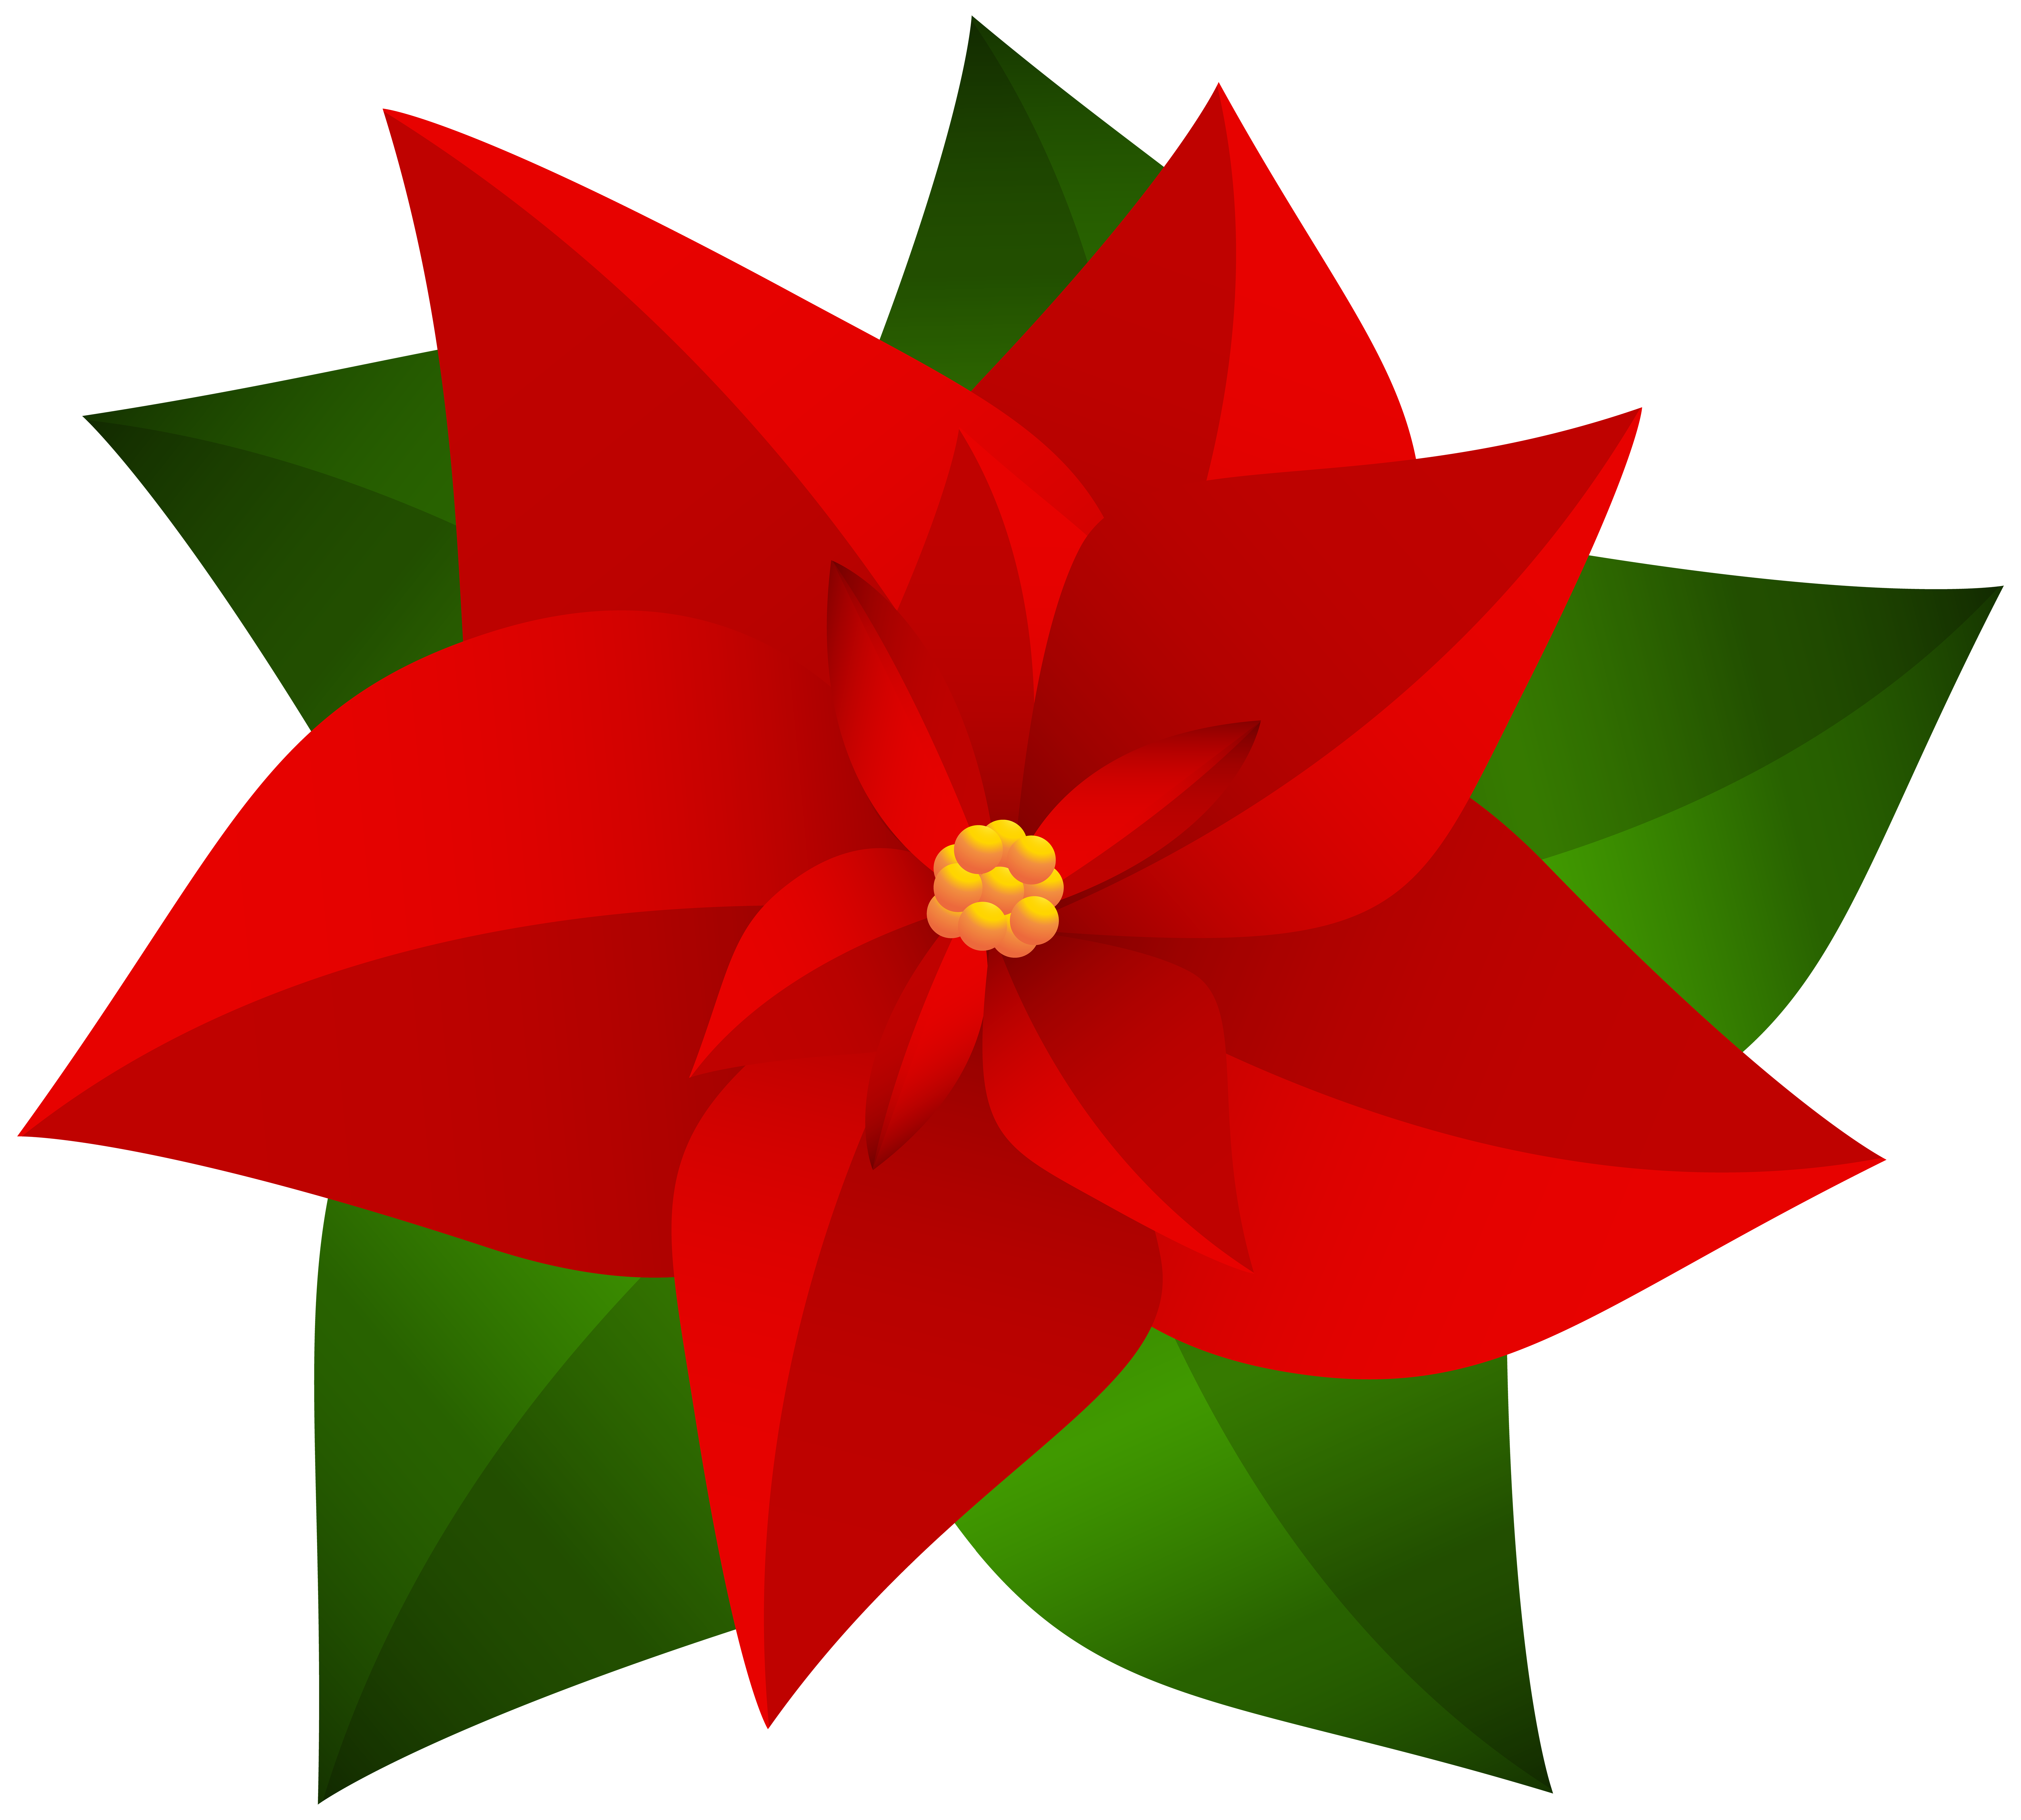 Christmas transparent clip art. Holly clipart poinsettia